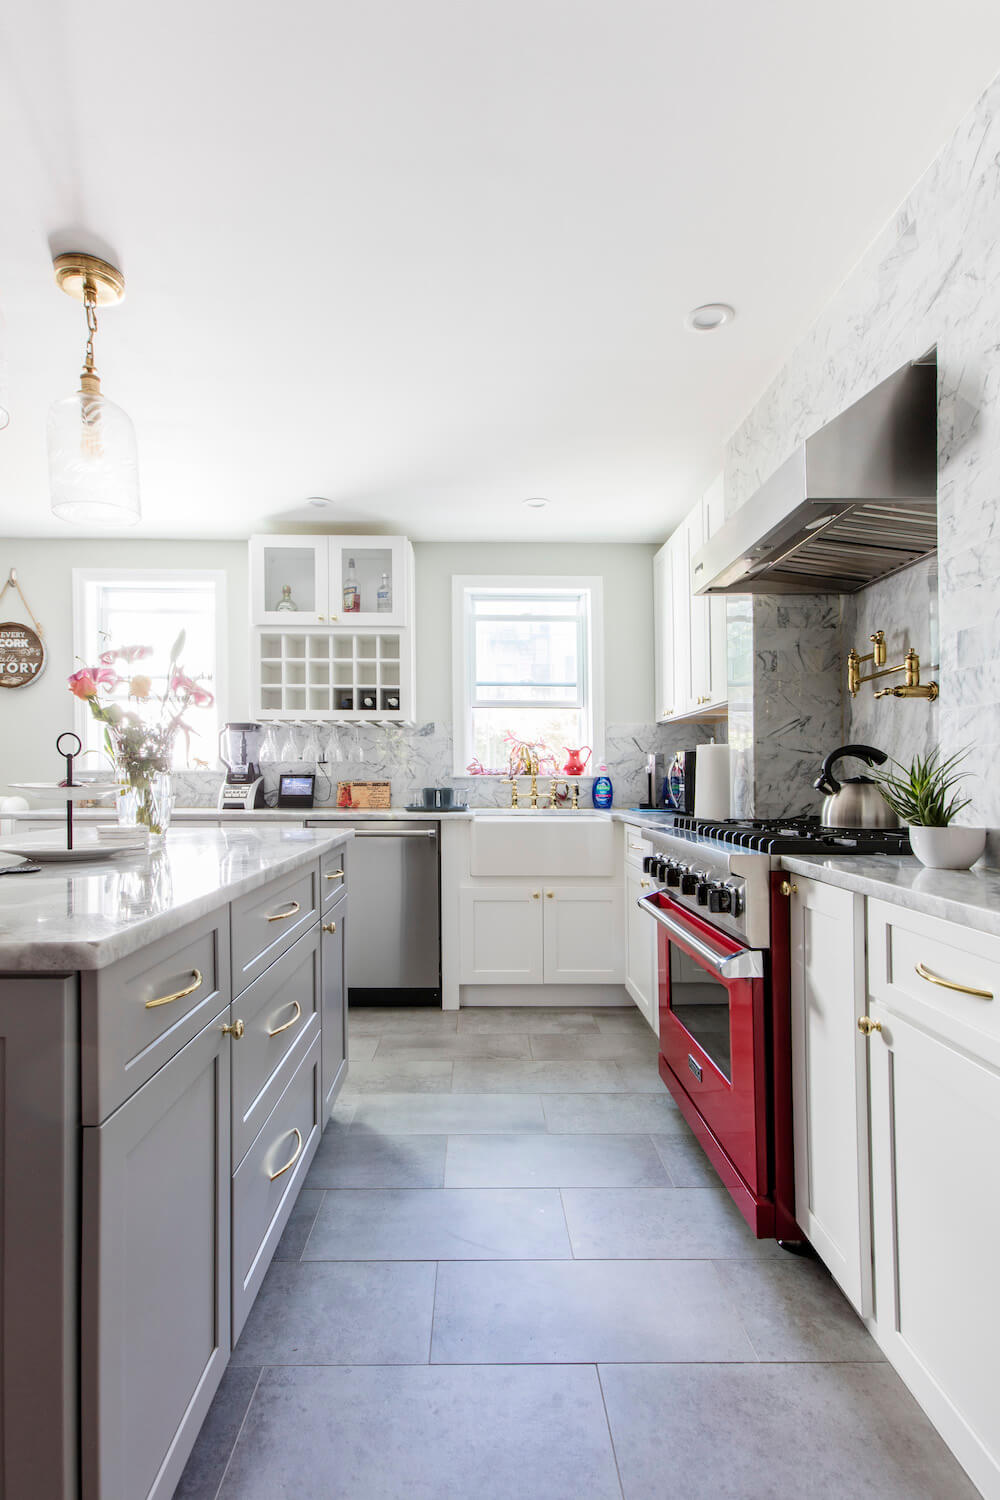 Kitchen with tile floor, gray kitchen island, gold cabinet pulls